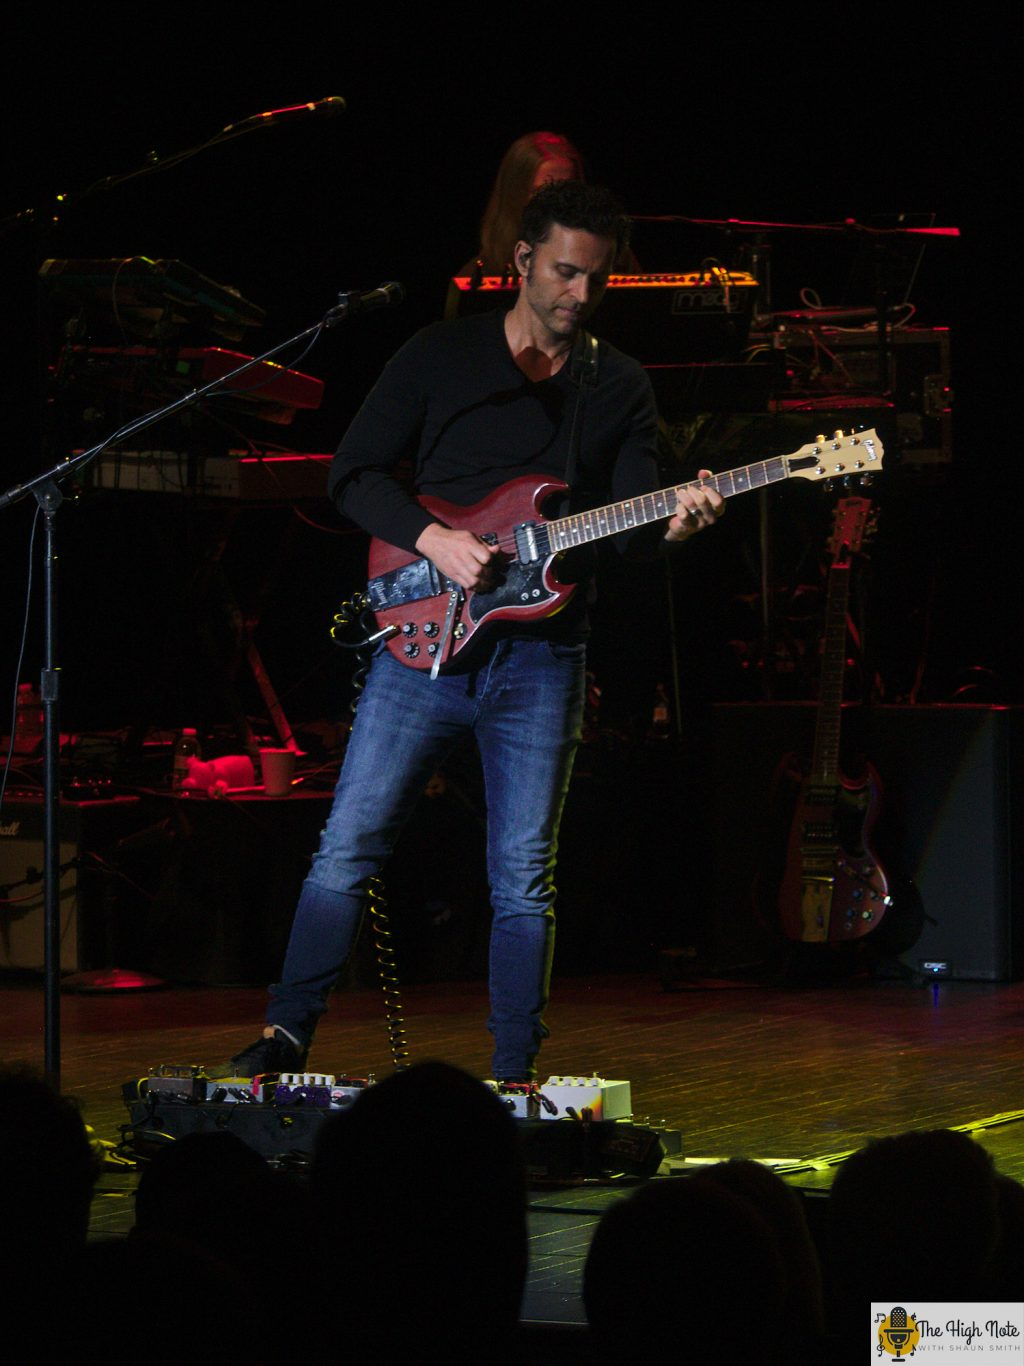 Dweezil Zappa Saturday, Nov. 4, 2018 at Harrah's Atlantic City (Shaun R. Smith/ The High Note).